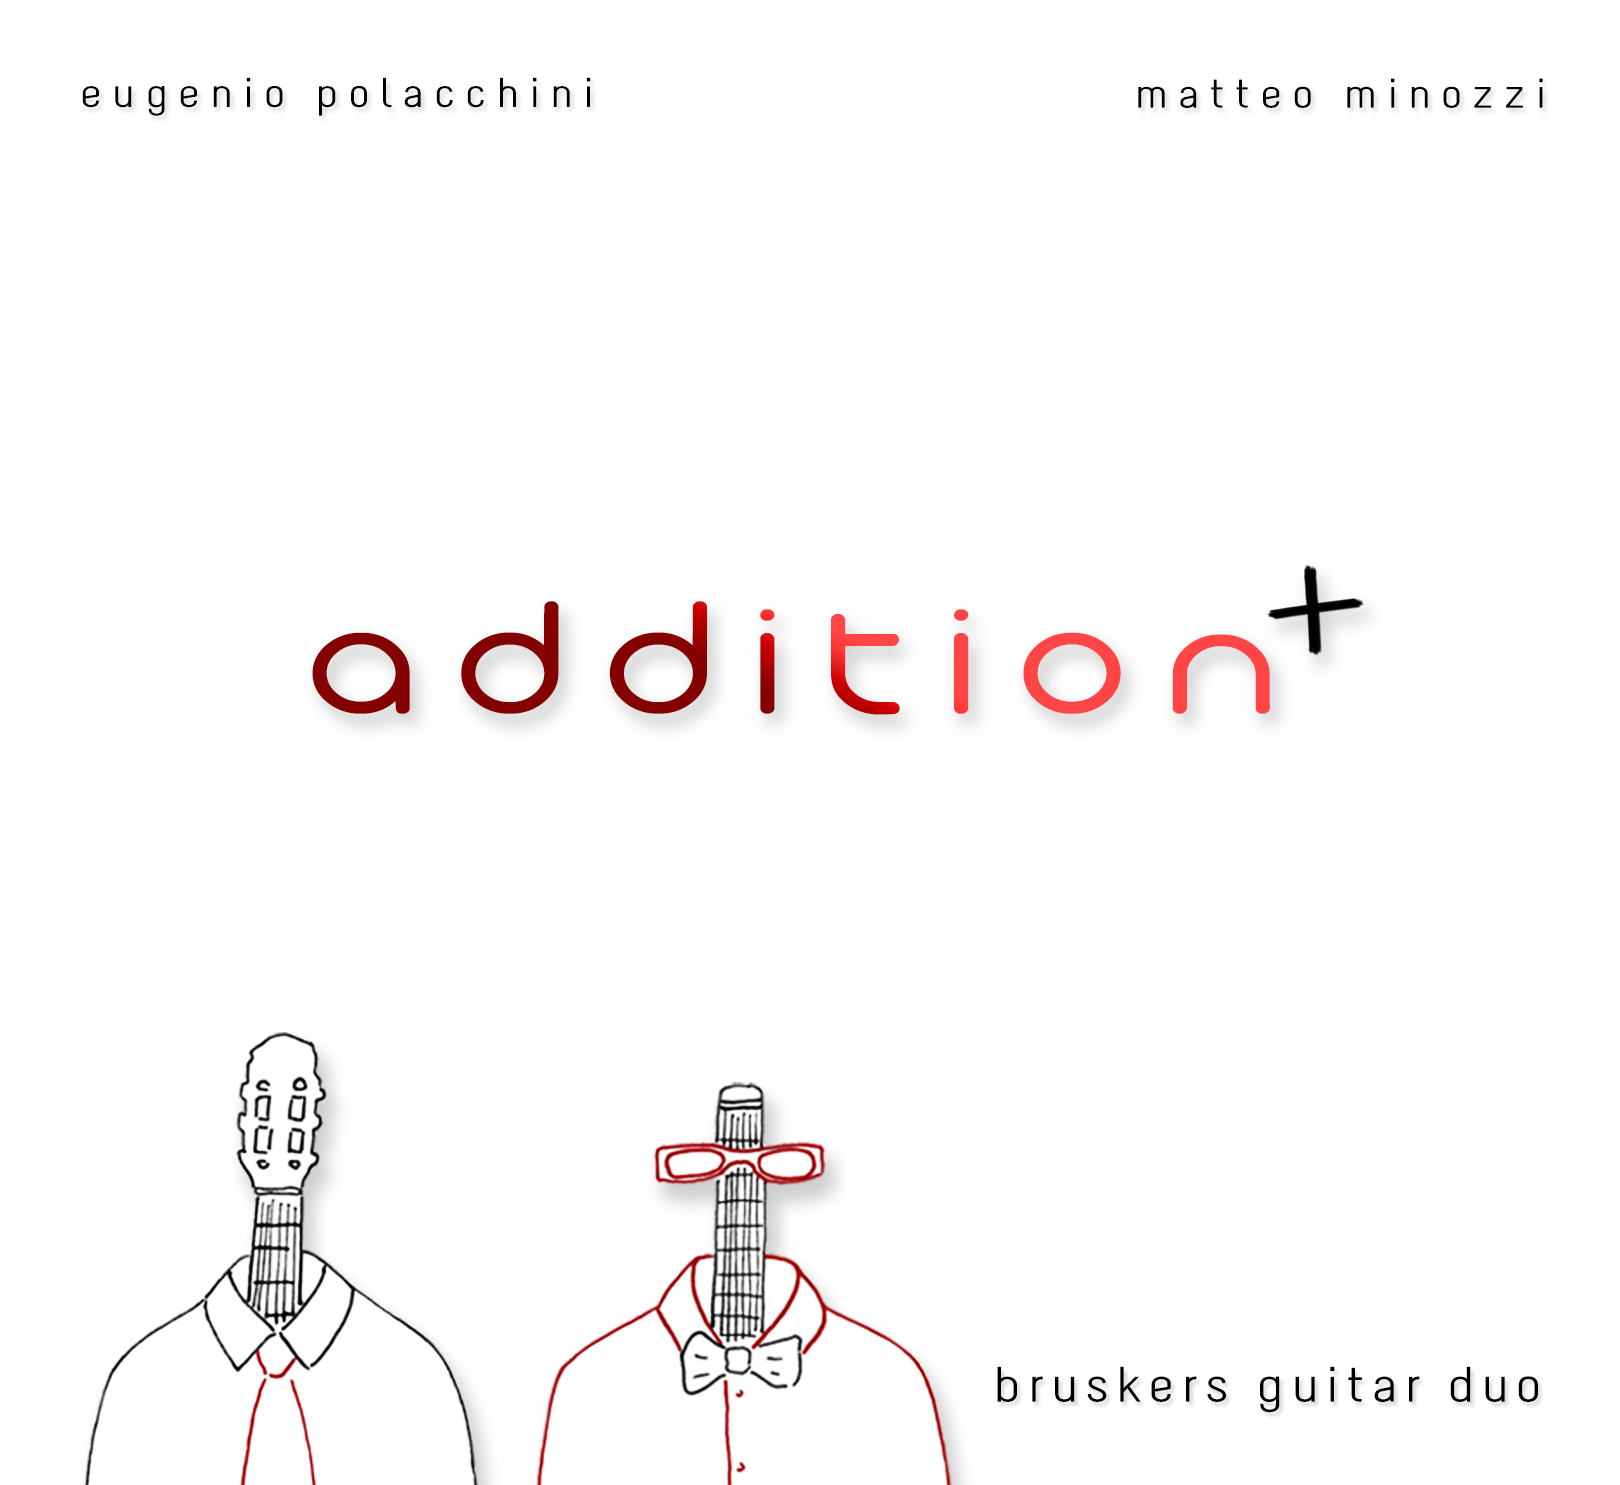 Addition - CD cover - Bruskers Guitar Duo